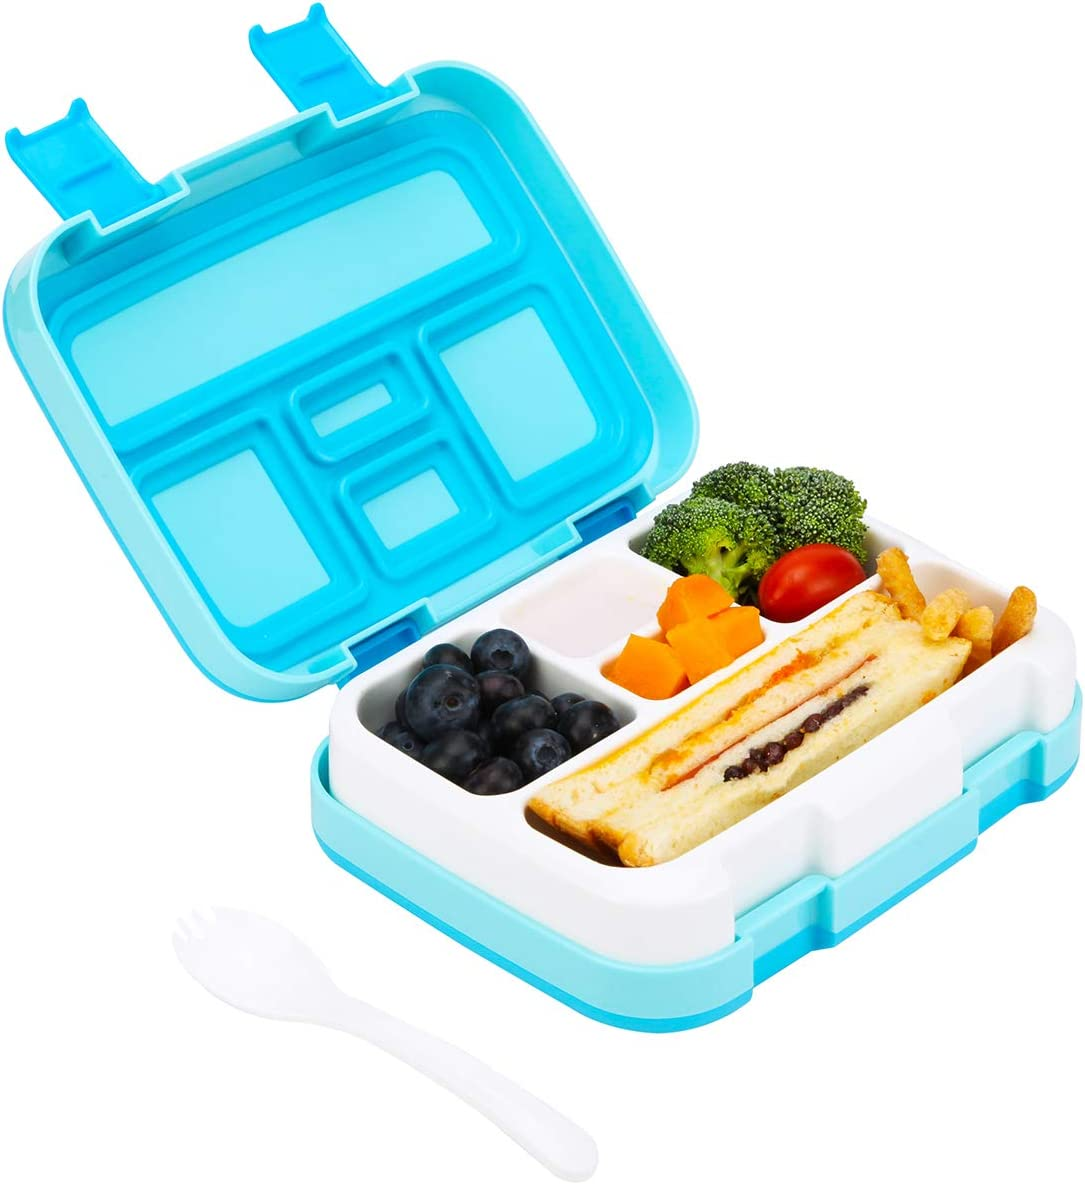 G.a HOMEFAVOR Bento Box for Adults & Kids, 5 Compartment Bento Lunch Box with Sturdy Shell, 800ml Meal and Snack Containers for Kids, BPA Free, Microwave and Dishwasher Safe (Blue)